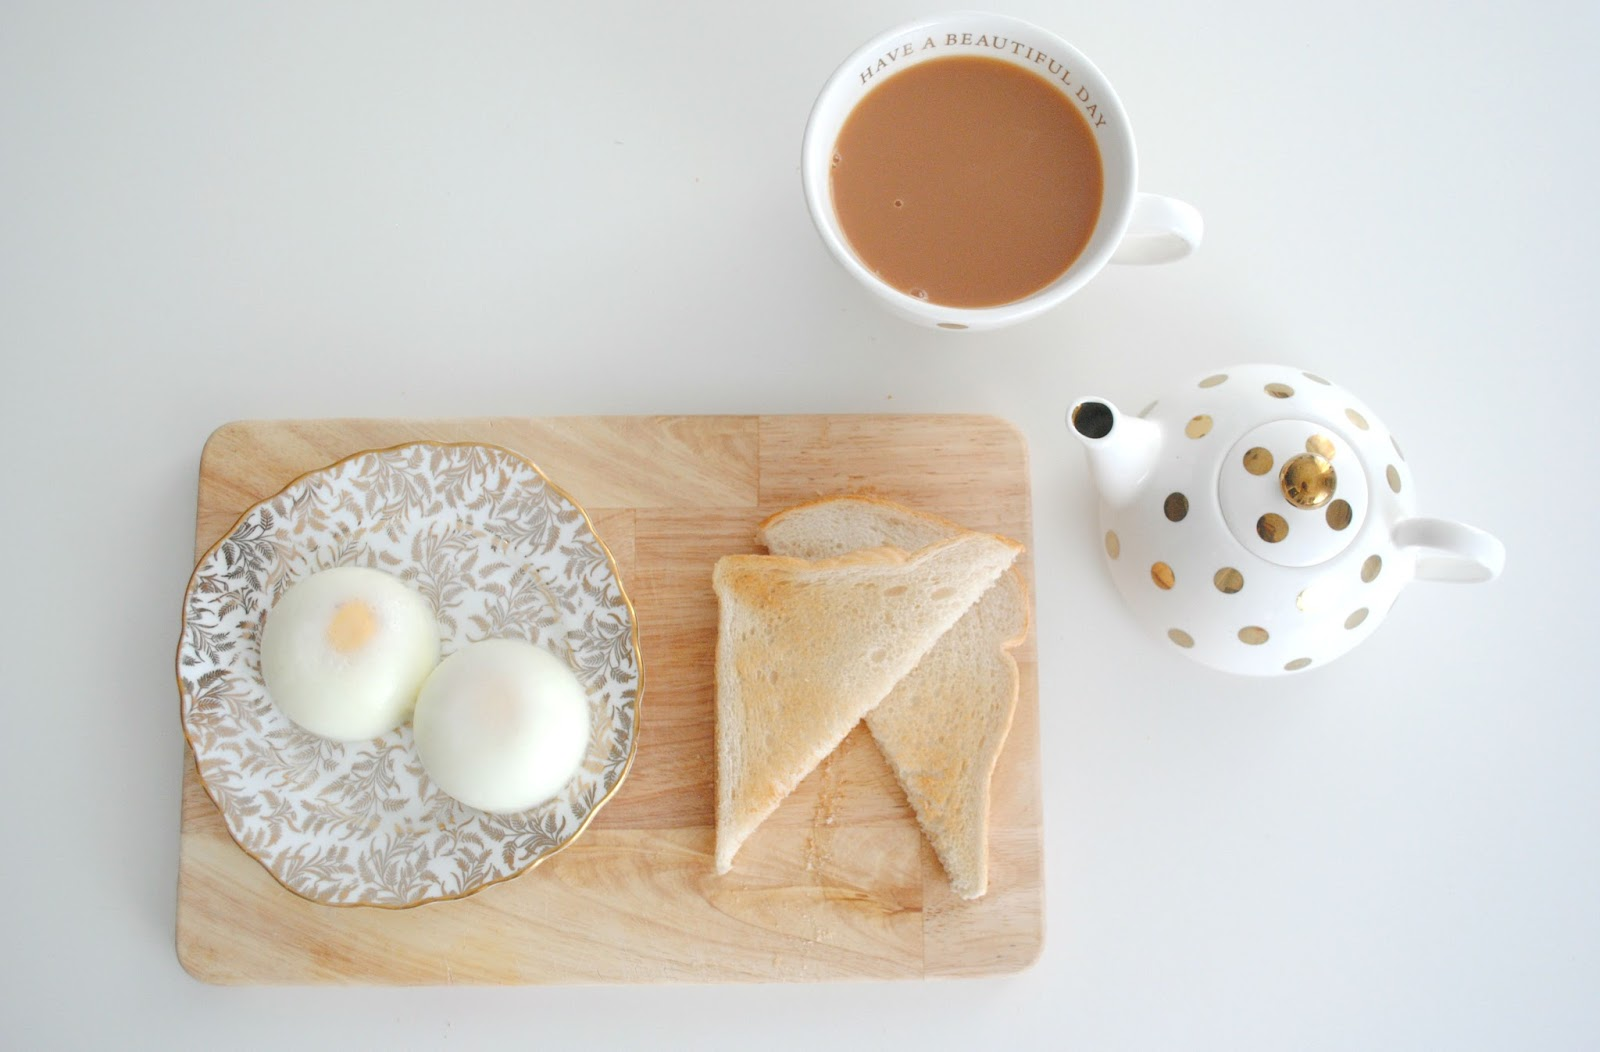 poached eggs gold tea teapot polka dots wooden board breakfast